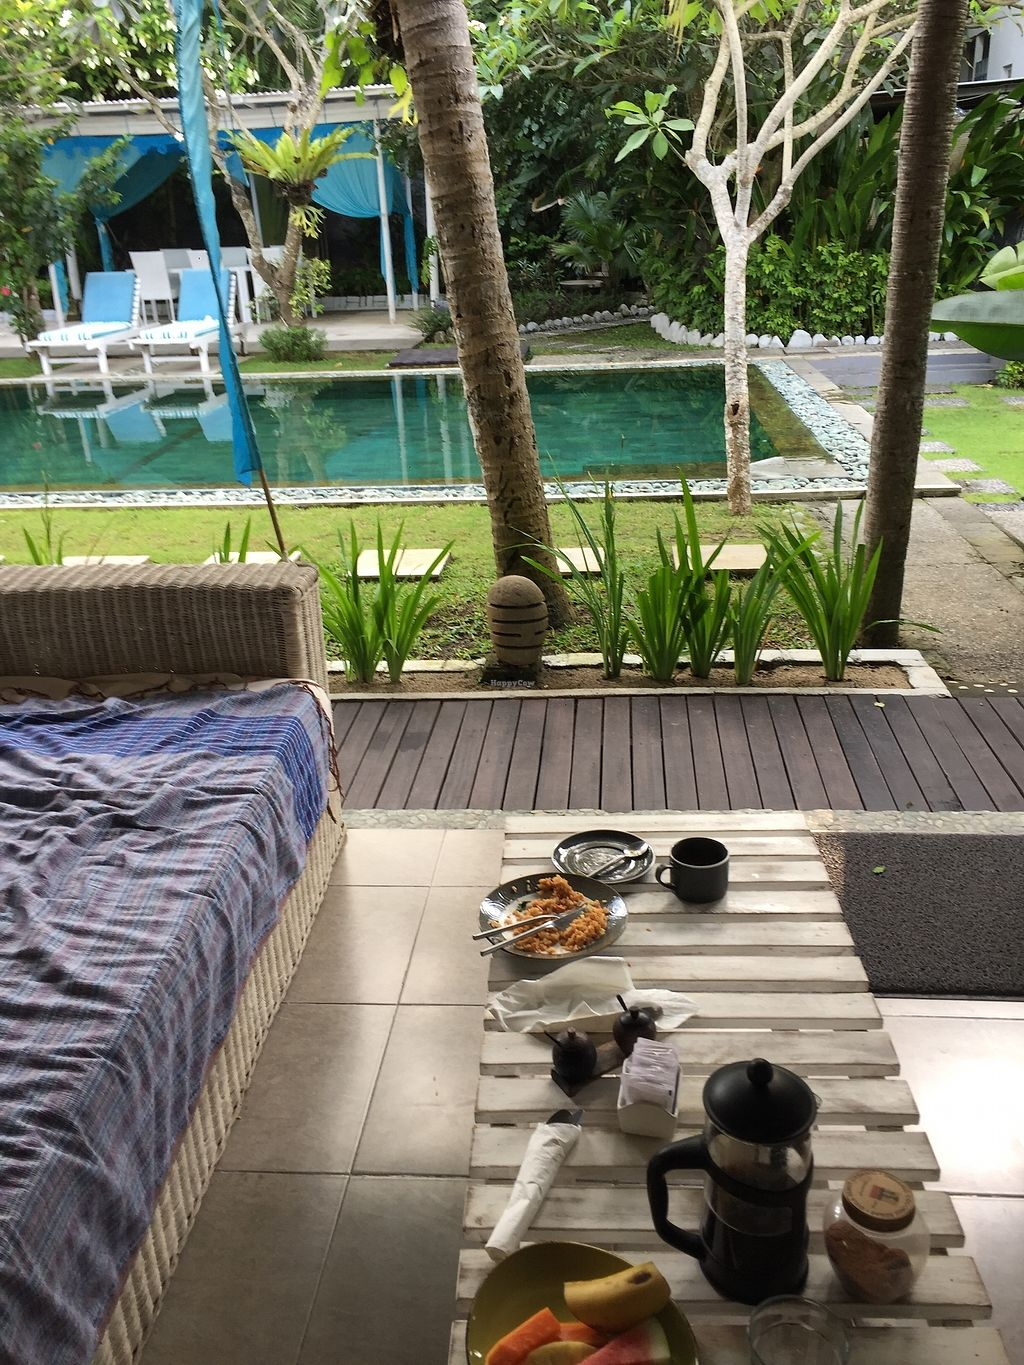 "Photo of Aquaria Eco Resort  by <a href=""/members/profile/Margaret.Hanna10"">Margaret.Hanna10</a> <br/>Great food, vegan and vegetarian options. Very helpful staff and no request is too hard. Balinese breakfast on our terrace.  <br/> December 15, 2017  - <a href='/contact/abuse/image/107212/335661'>Report</a>"